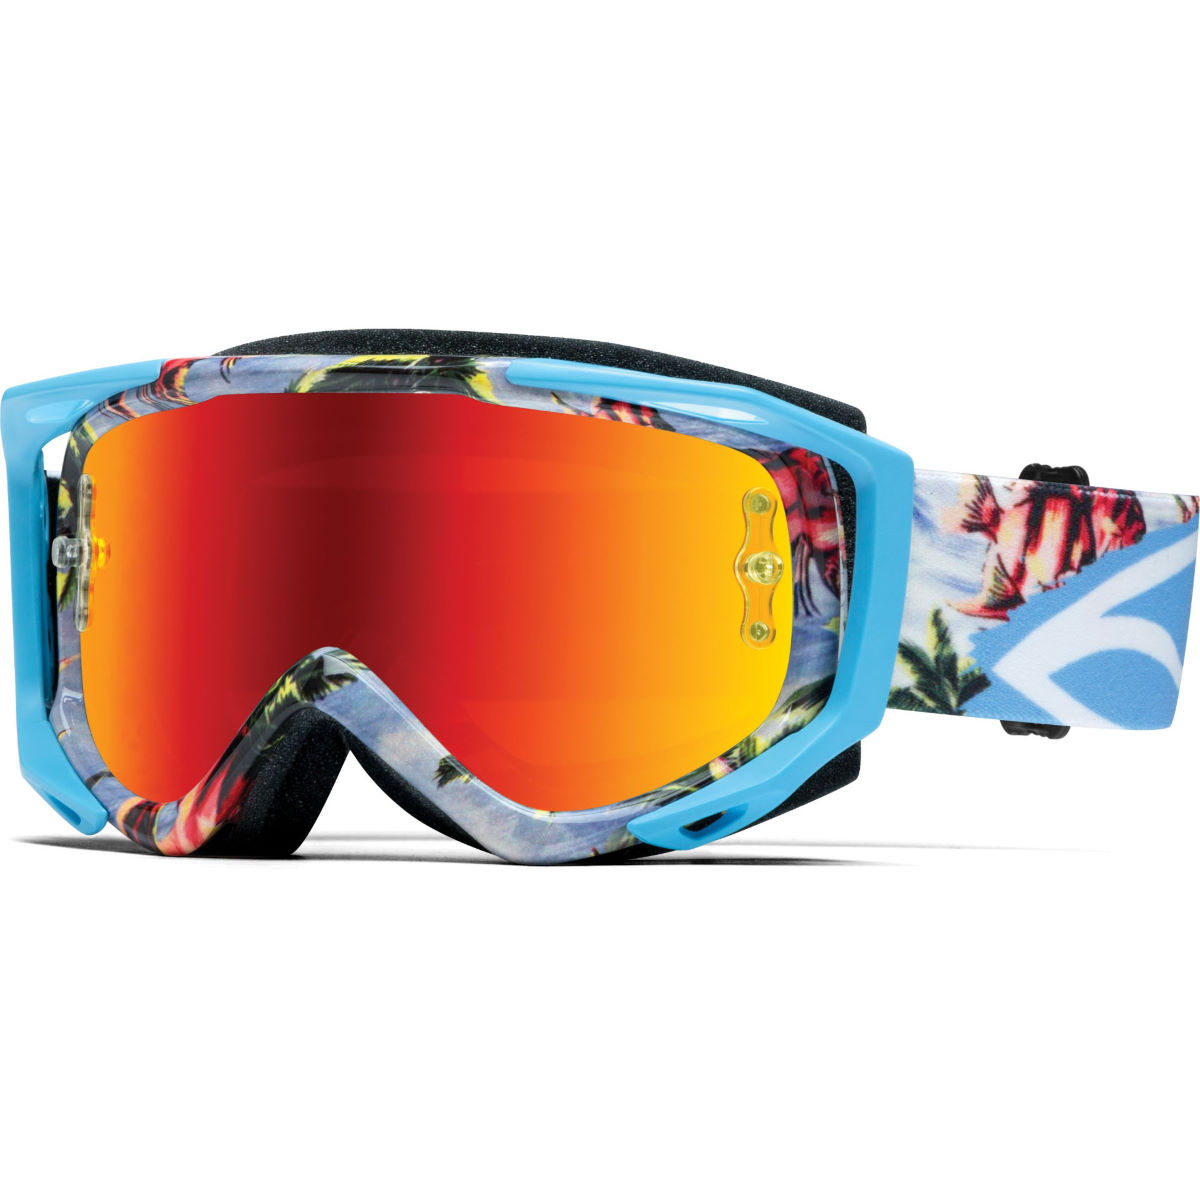 Masque Smith Fuel V.2 SW-X M - Taille unique Blue Burnout - Red M